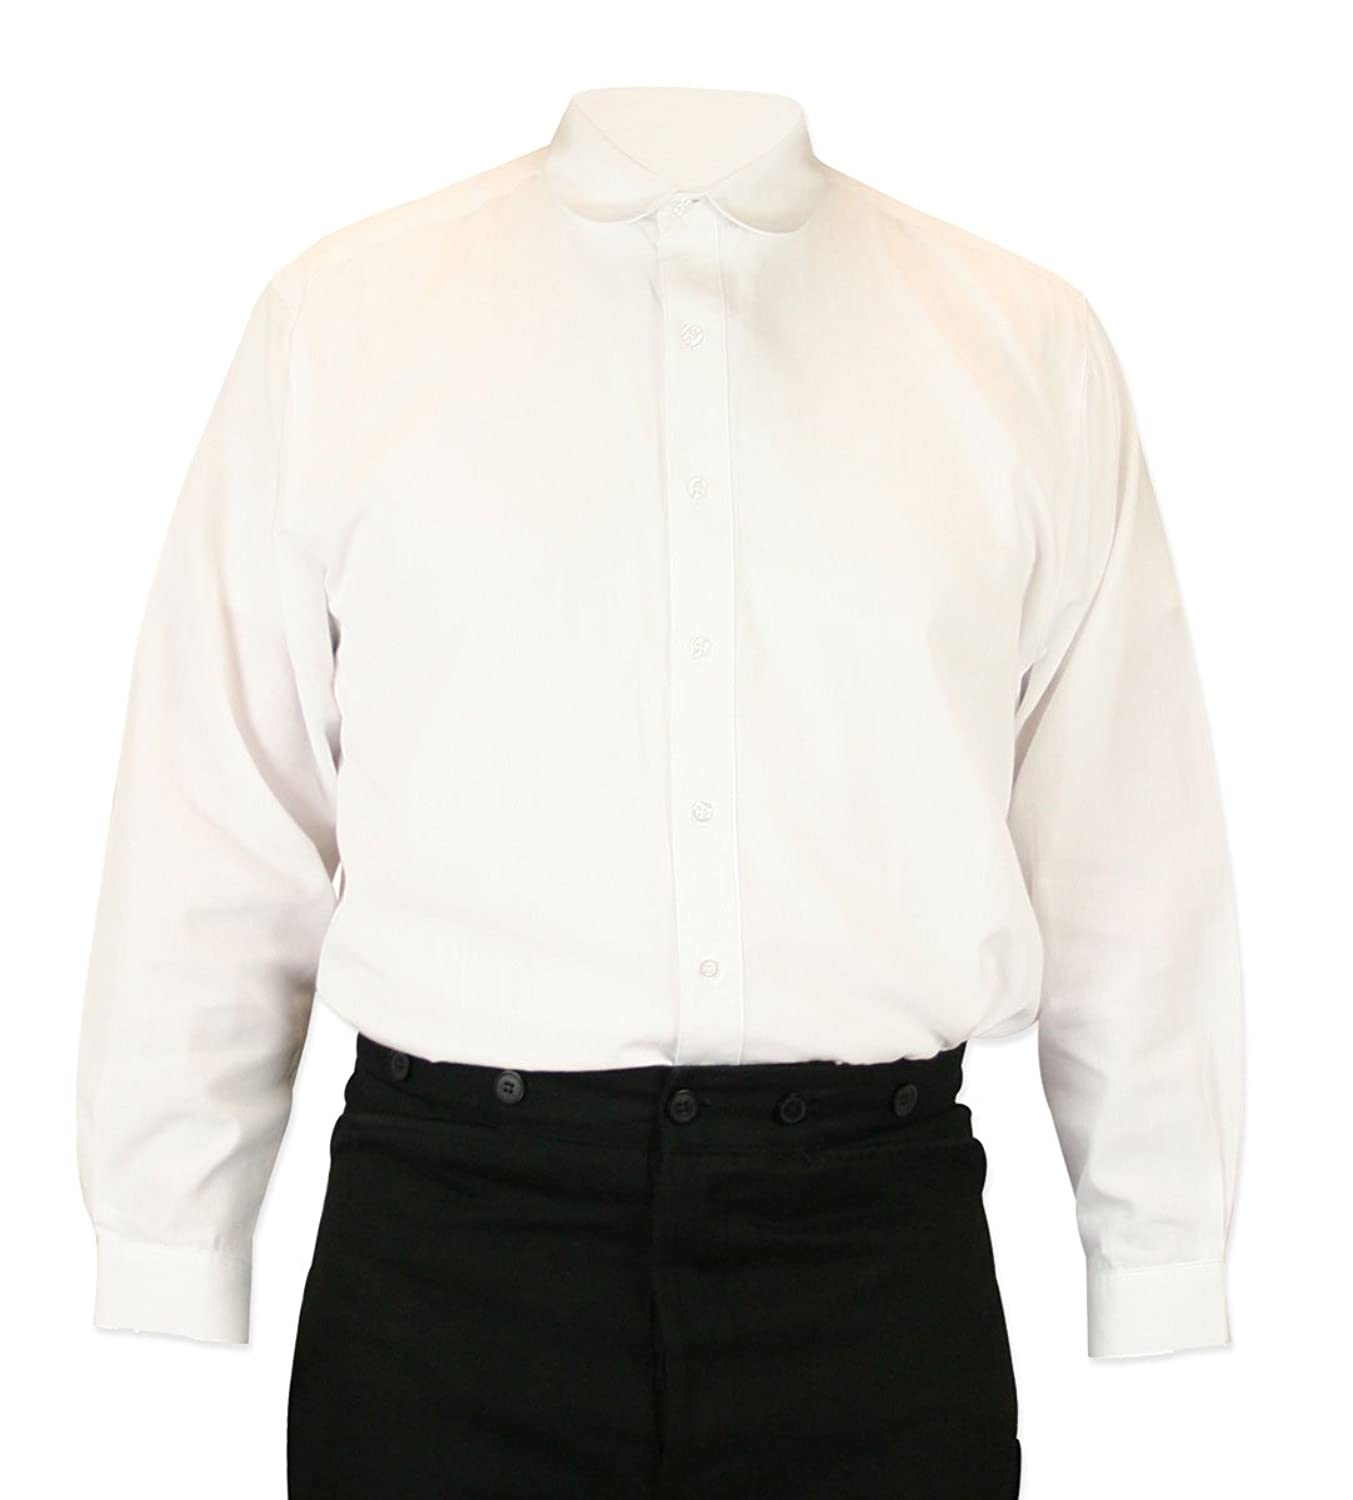 Victorian Men's Shirts- Wingtip, Gambler, Bib, Collarless Virgil Club Collar Dress Shirt $59.95 AT vintagedancer.com